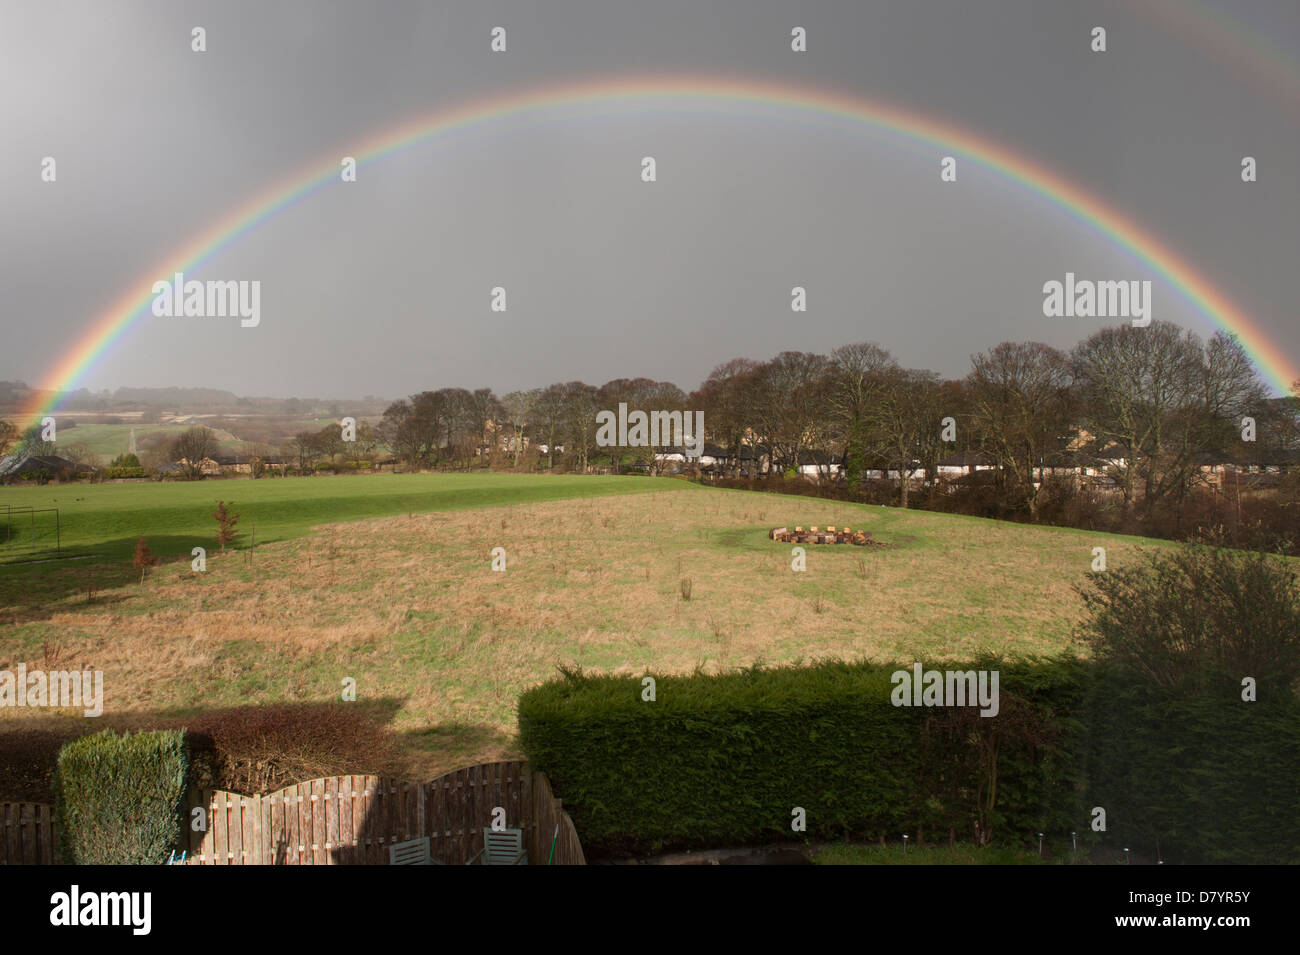 Beautiful rainbow creating a perfect arch across grey rainclouds in sky, over fields in sea-rural landscape - Baildon, Stock Photo